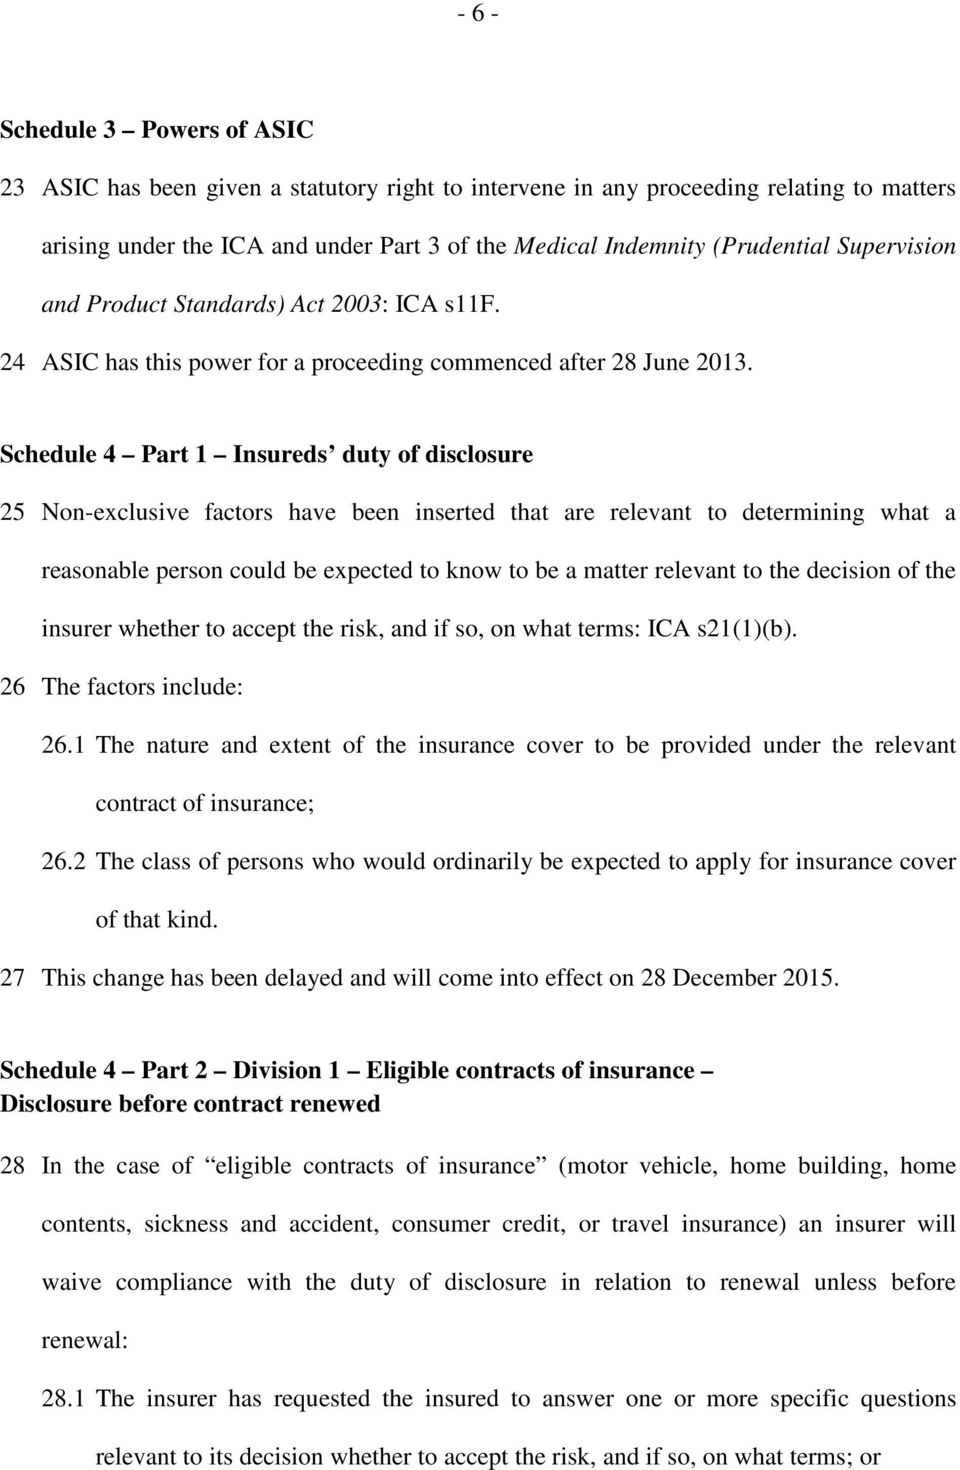 Schedule 4 Part 1 Insureds duty of disclosure 25 Non-exclusive factors have been inserted that are relevant to determining what a reasonable person could be expected to know to be a matter relevant